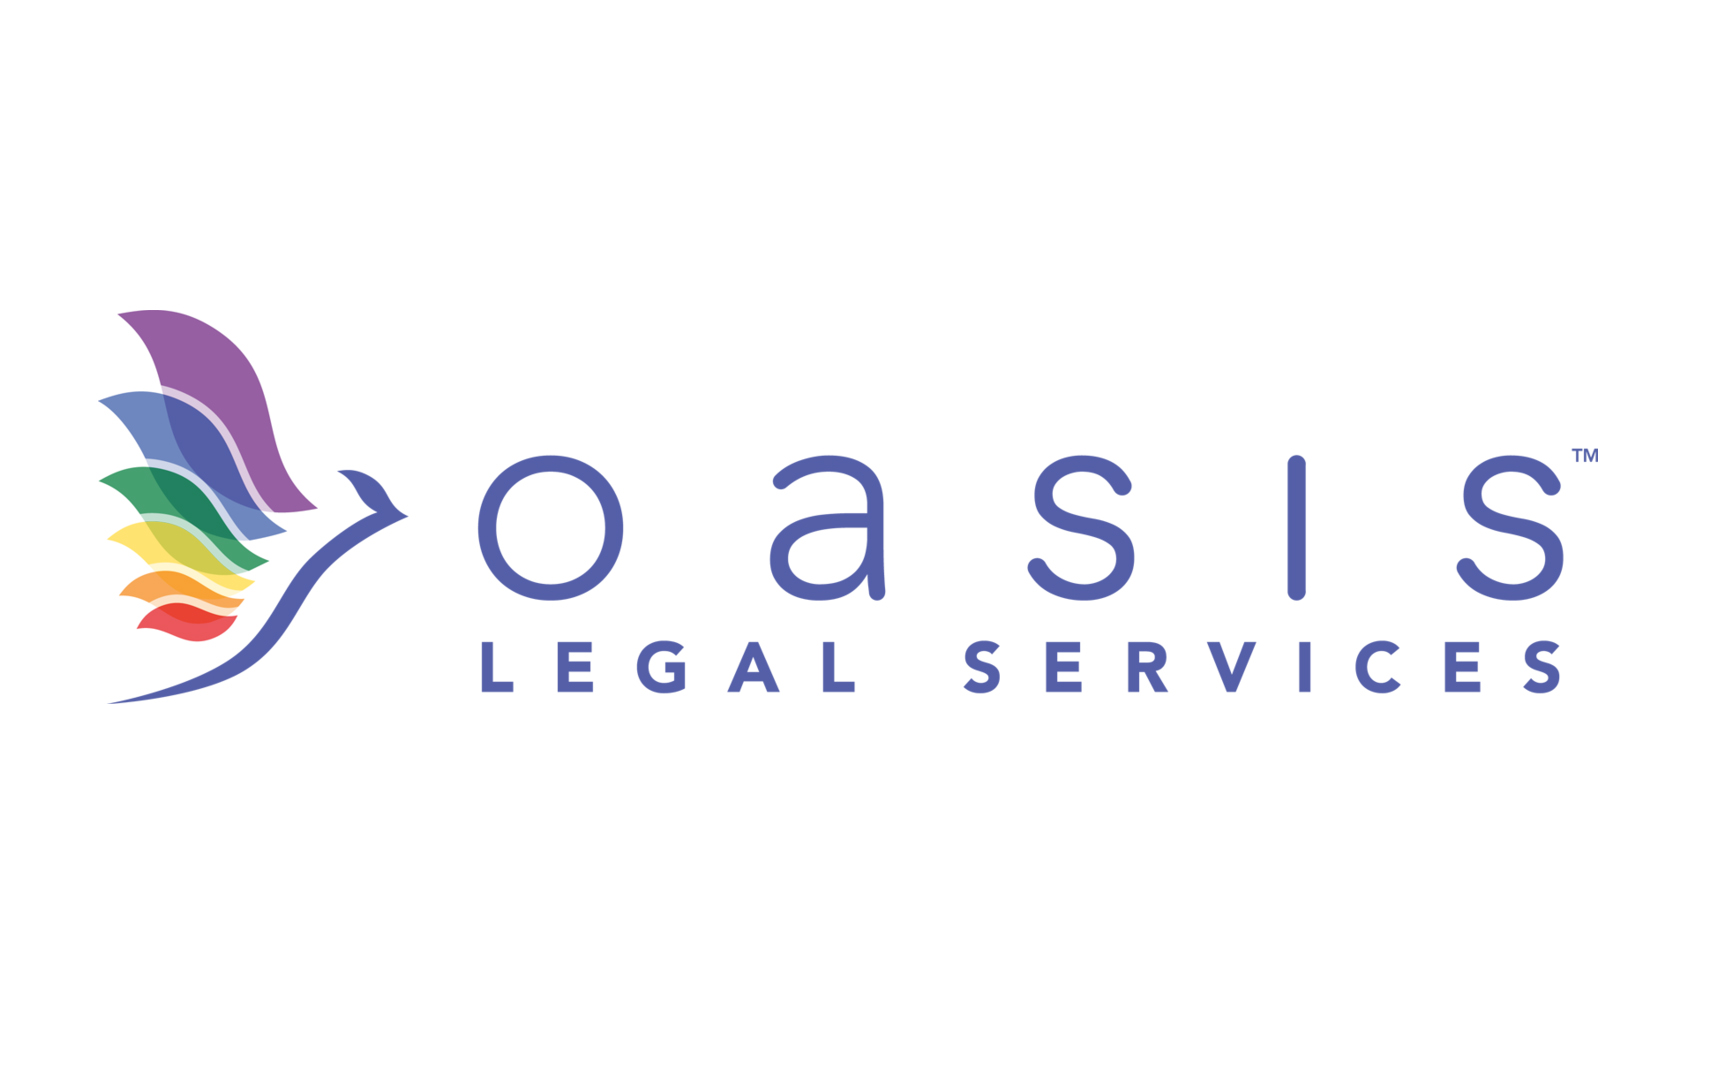 oasis legal services image.jpg